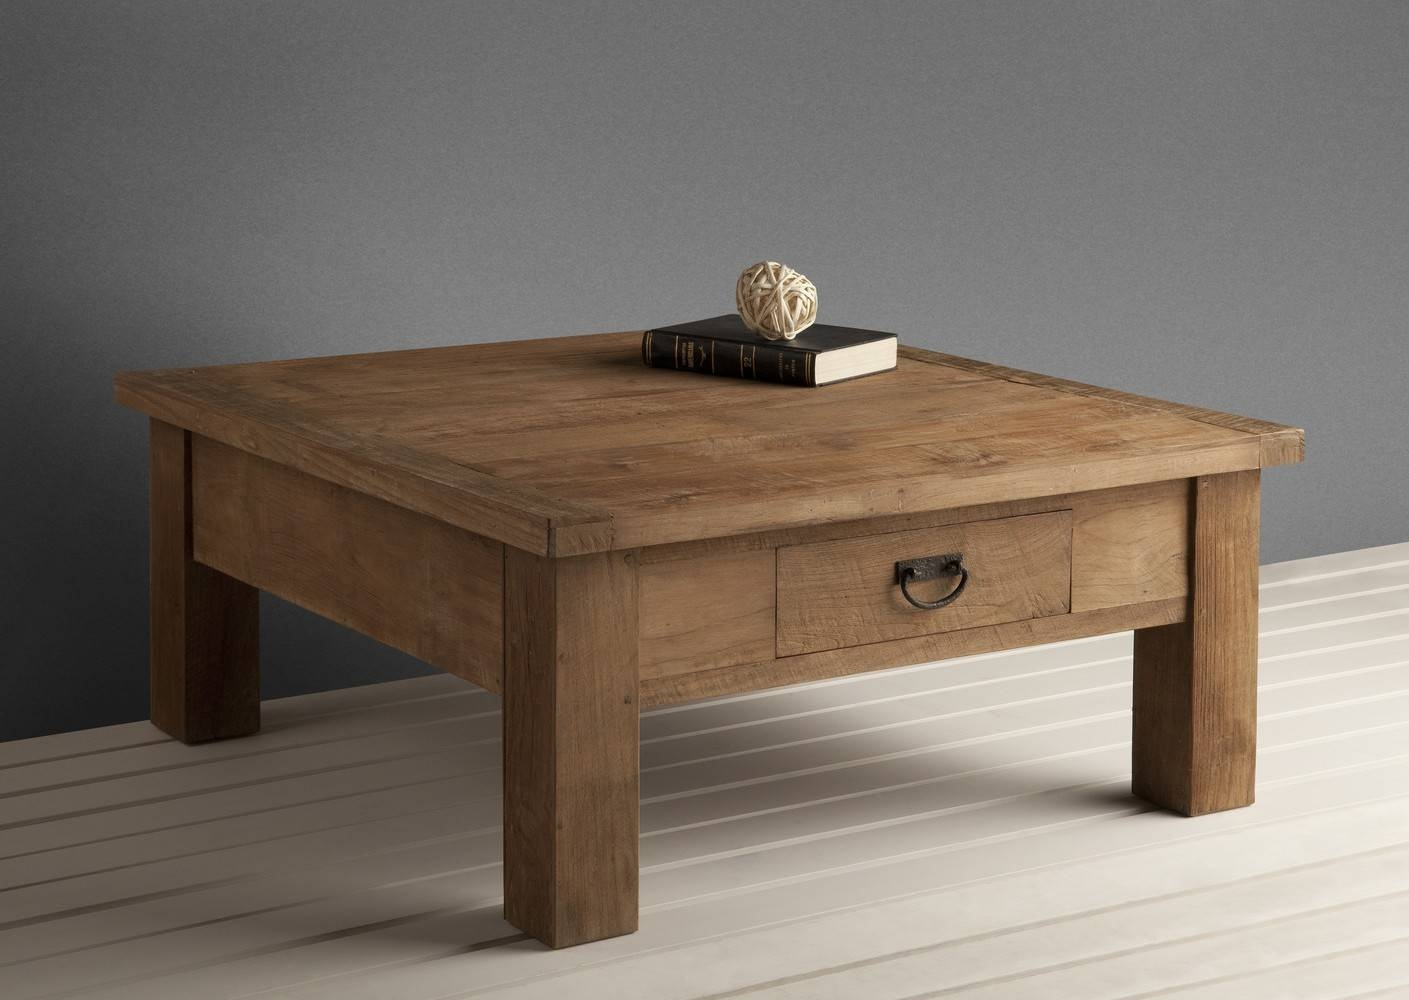 Fascinating Solid Wood Coffee Table With Drawers On Furniture Home Regarding Coffee Tables Solid Wood (View 18 of 30)